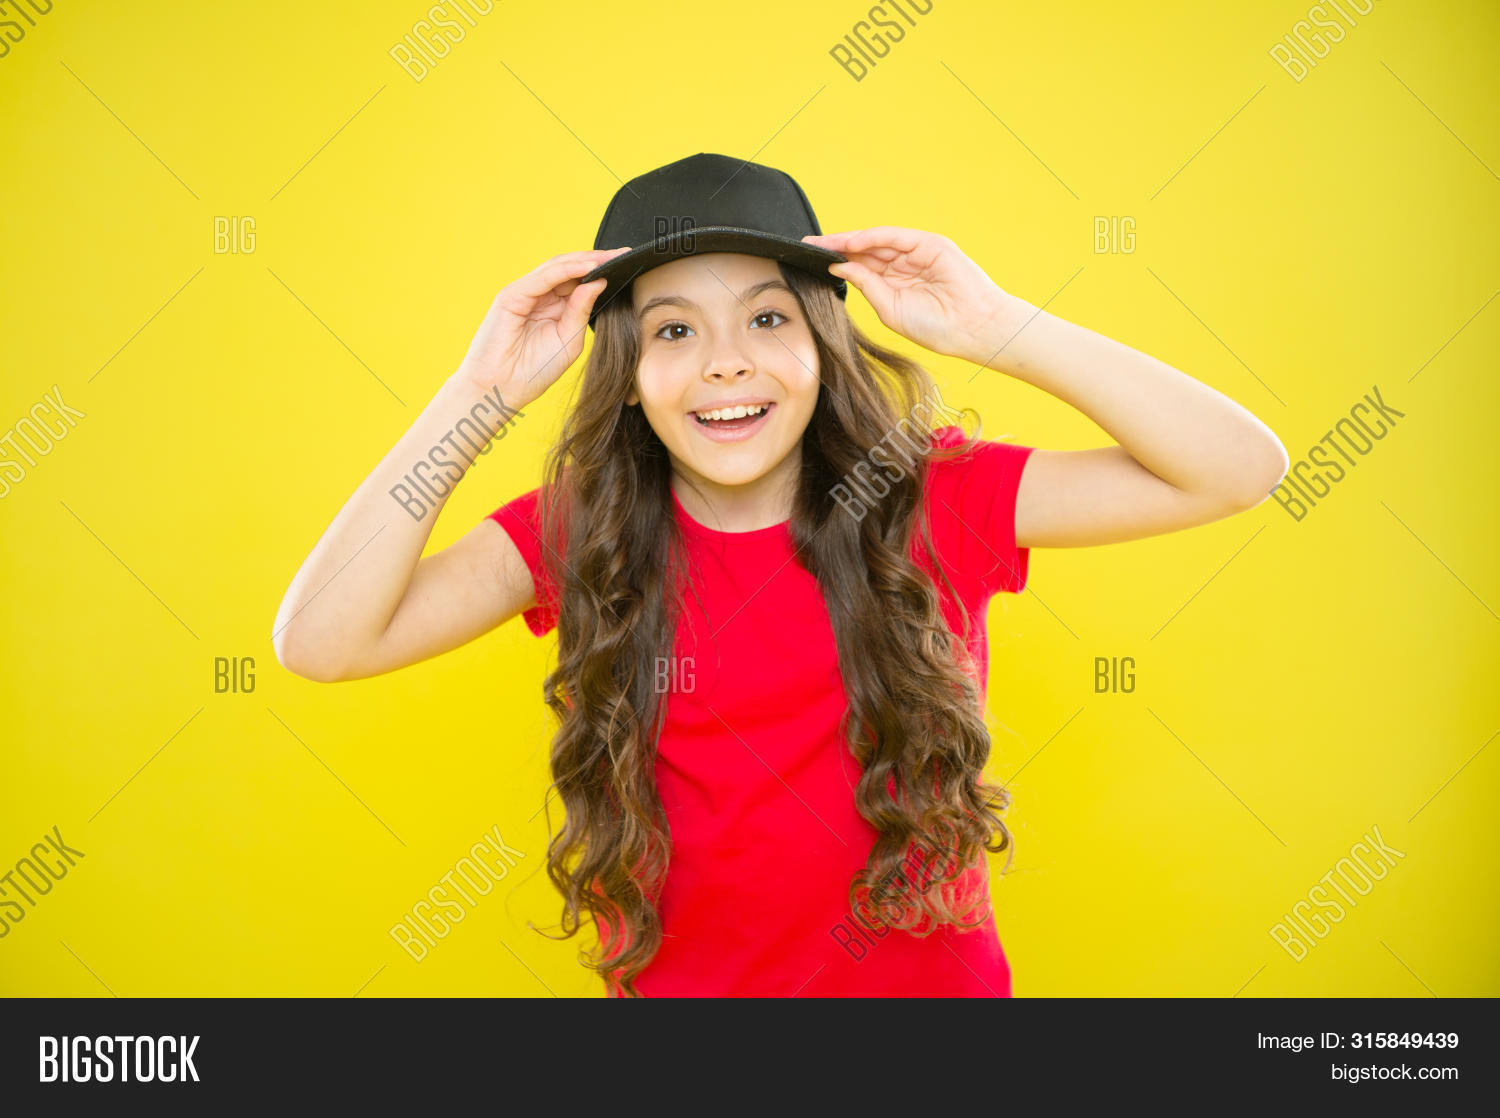 accessory,adorable,background,baseball,brim,cap,caucasian,cheerful,child,childhood,comfy,concept,confident,cool,curly,cute,fashion,fashionable,girl,hair,hat,have,kid,little,long,modern,must,protection,protective,schoolgirl,smile,snapback,sport,spring,street,style,stylish,summer,sun,trends,wear,wearing,youth